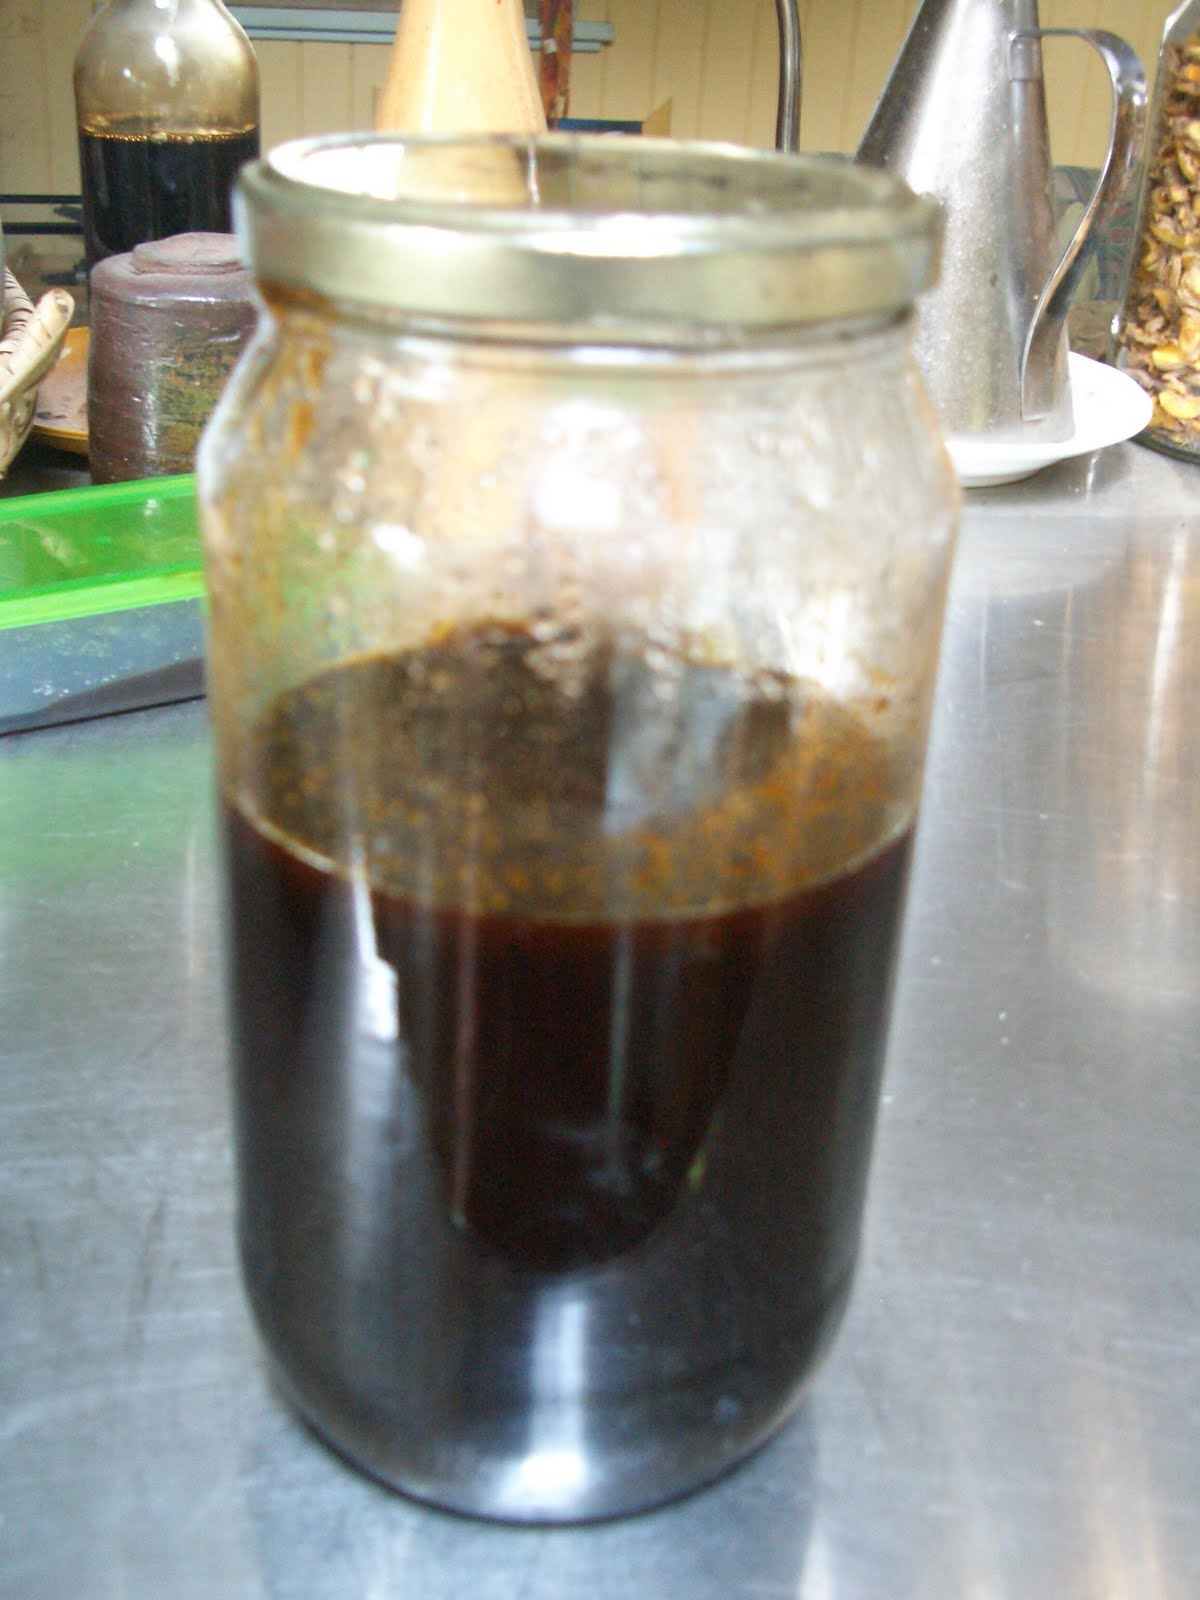 Home made yacon syrup